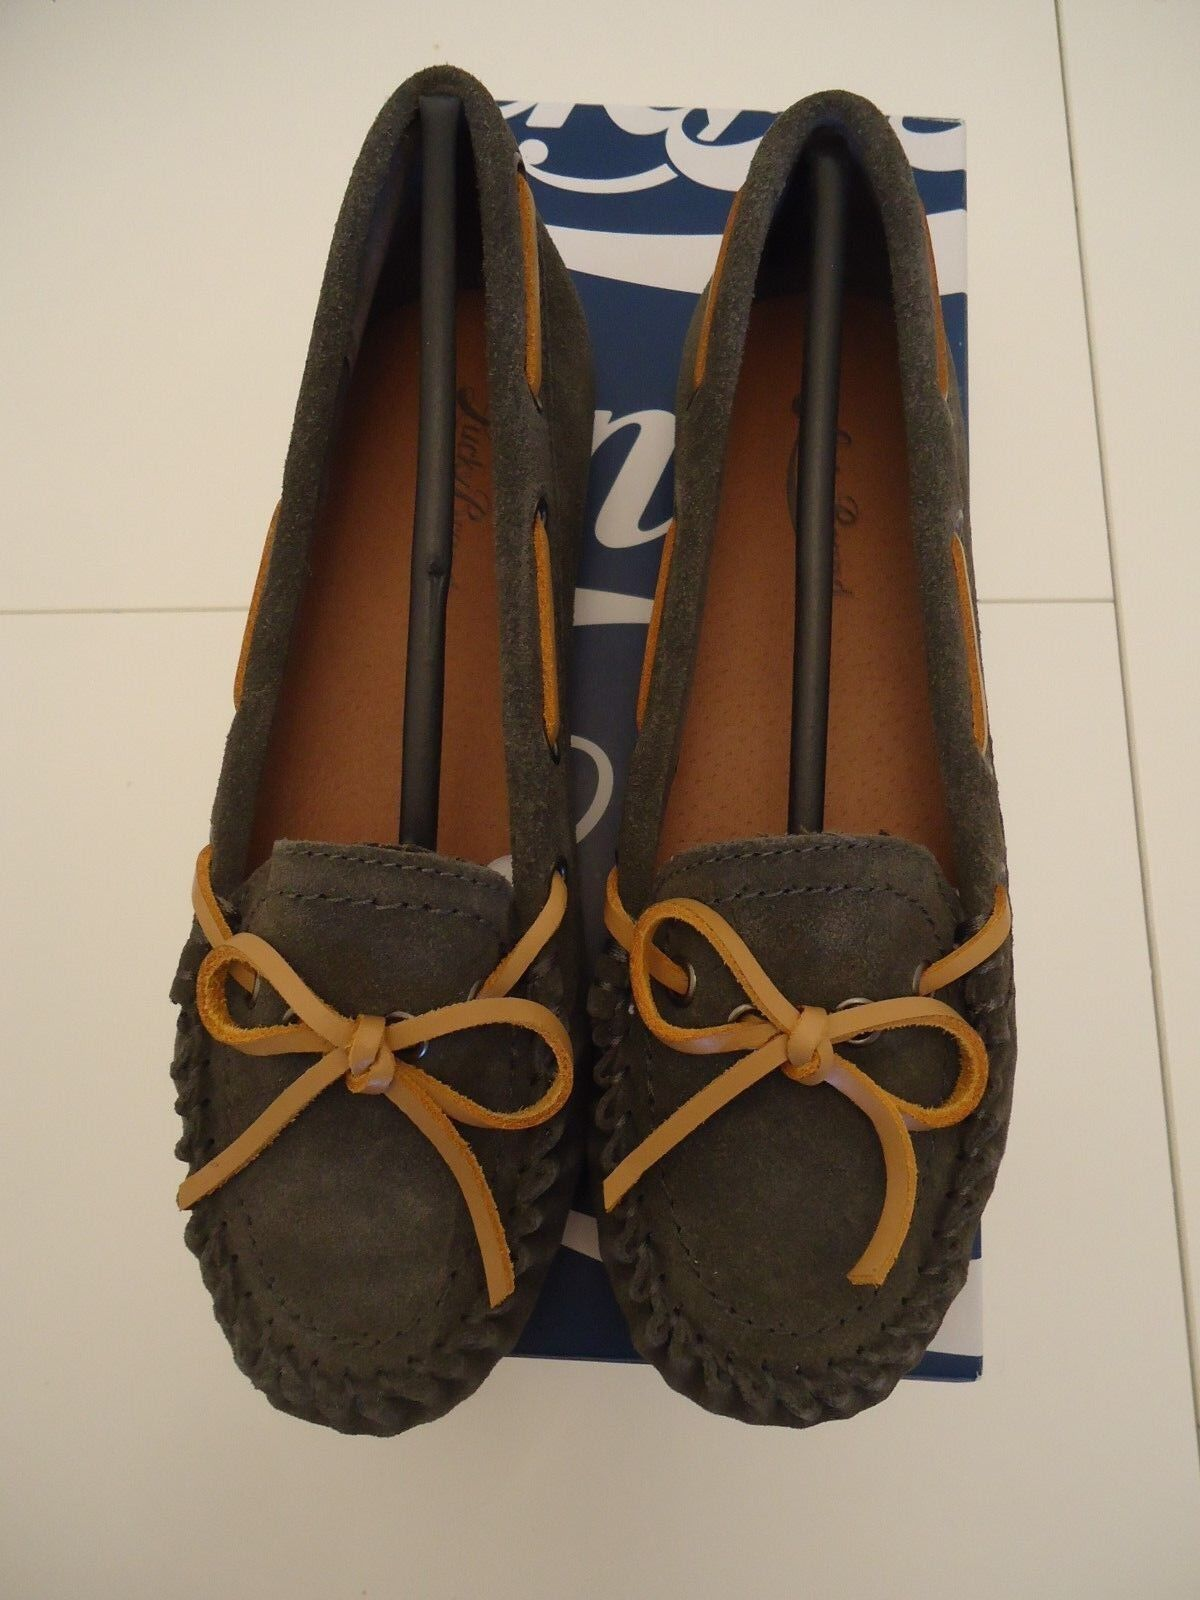 LUCKY BRAND MOCCASIN COW SPLIT SUEDE LP-ABELLE2 FLATS STORM, LEATHER SIZE 6M NEW